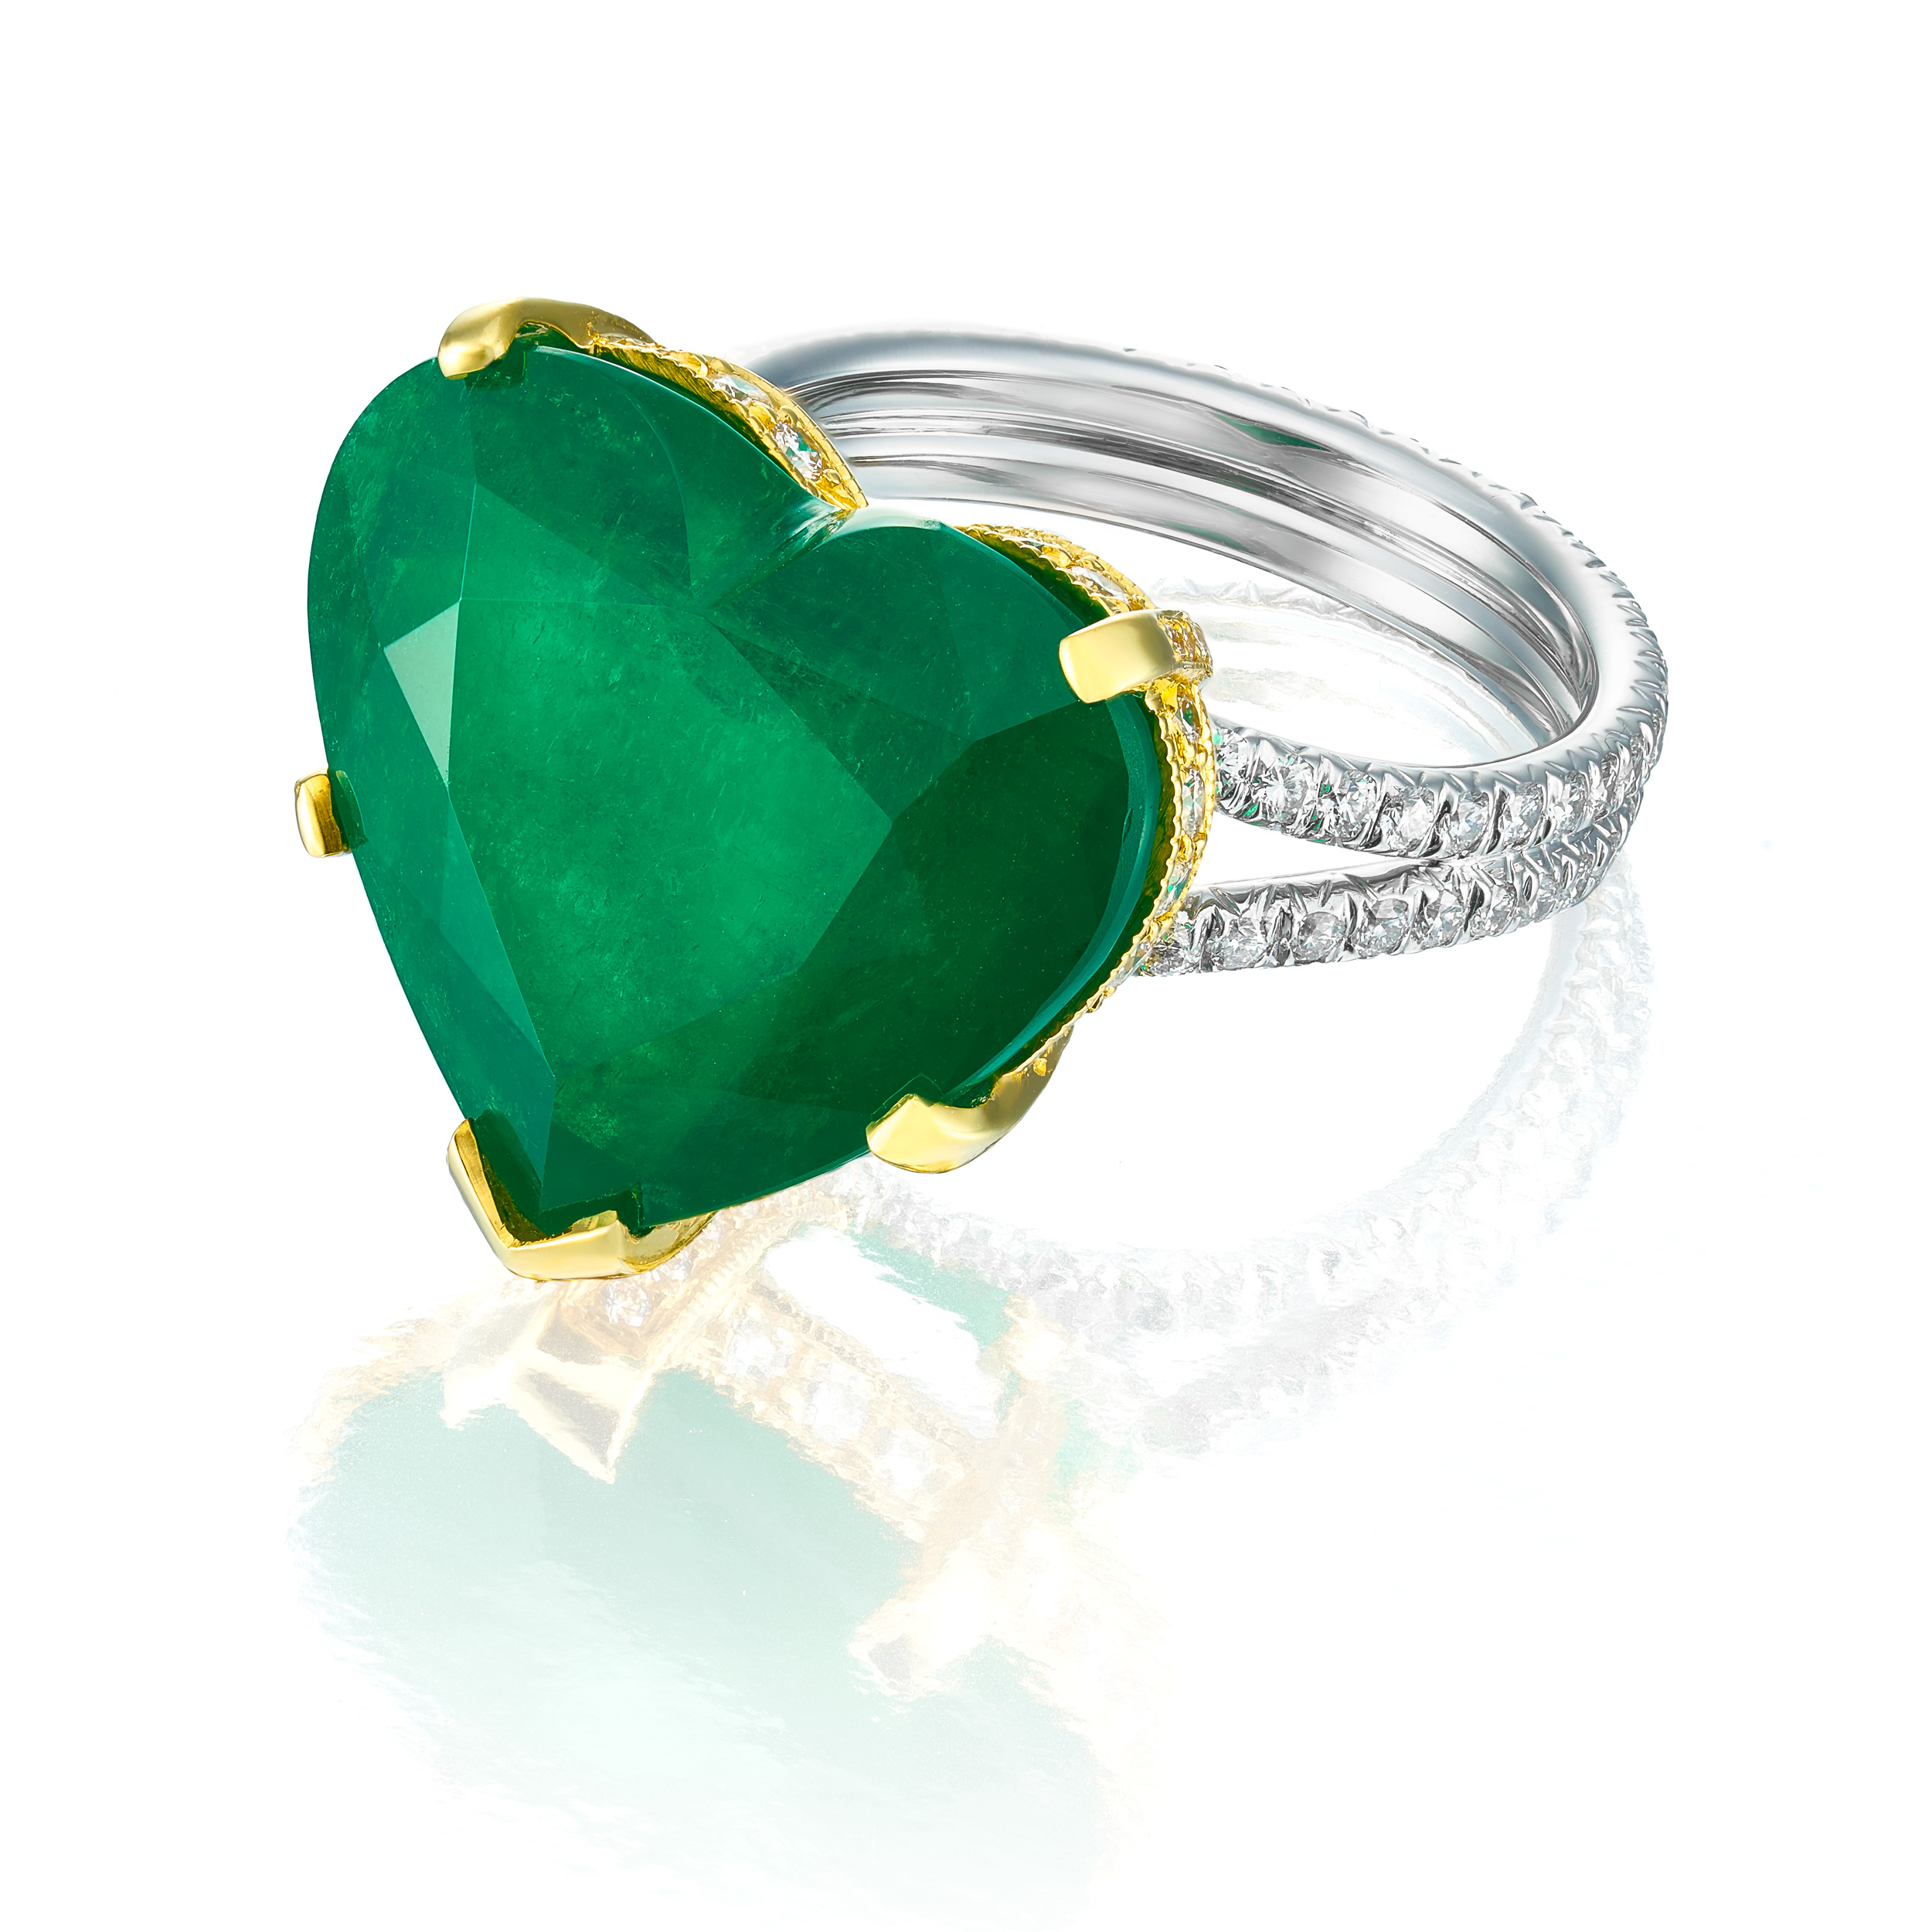 Emerald_Heart_Necklace_Miami_Fort Lauderdale_Commercial_Jewelry_Photographer_Franklin_Castillo.jpg